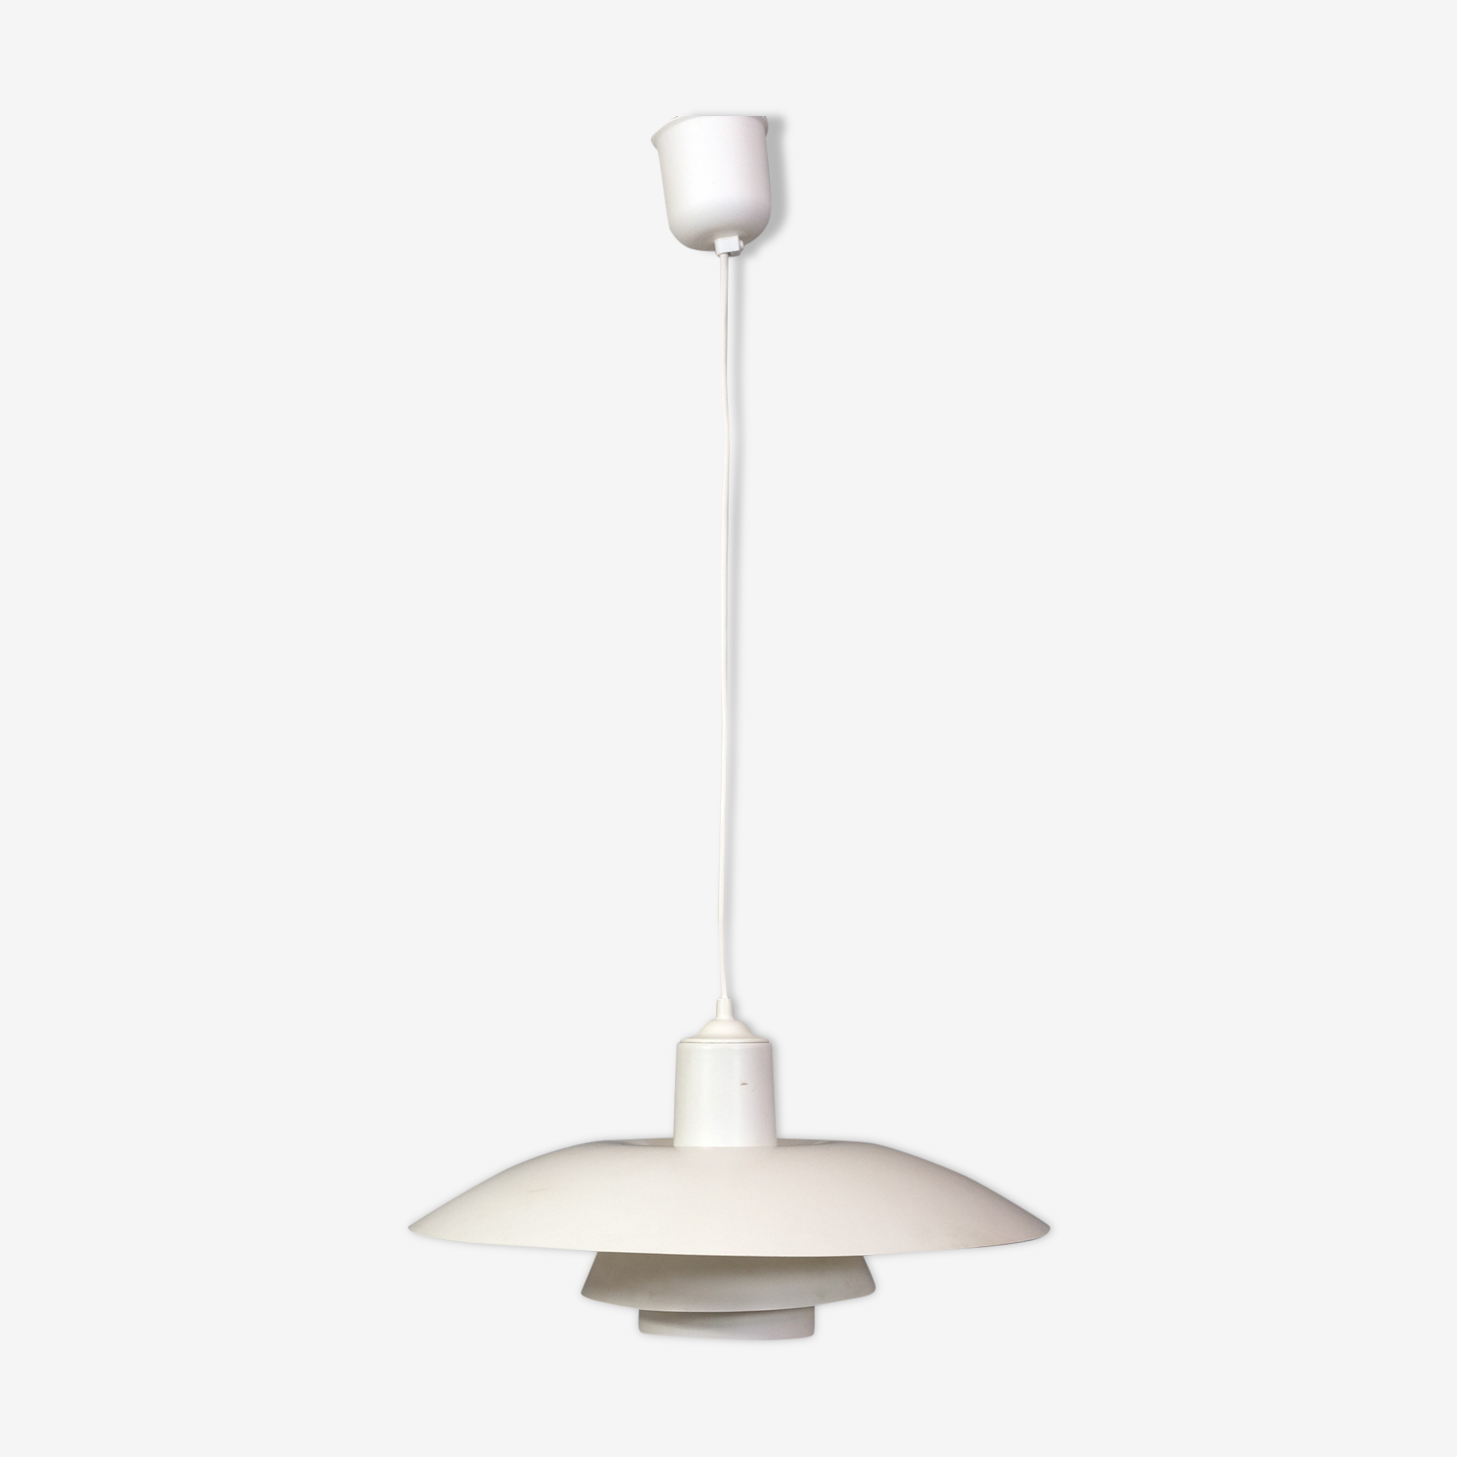 Suspension PH4 Poul Henningsen for Louis Poulsen